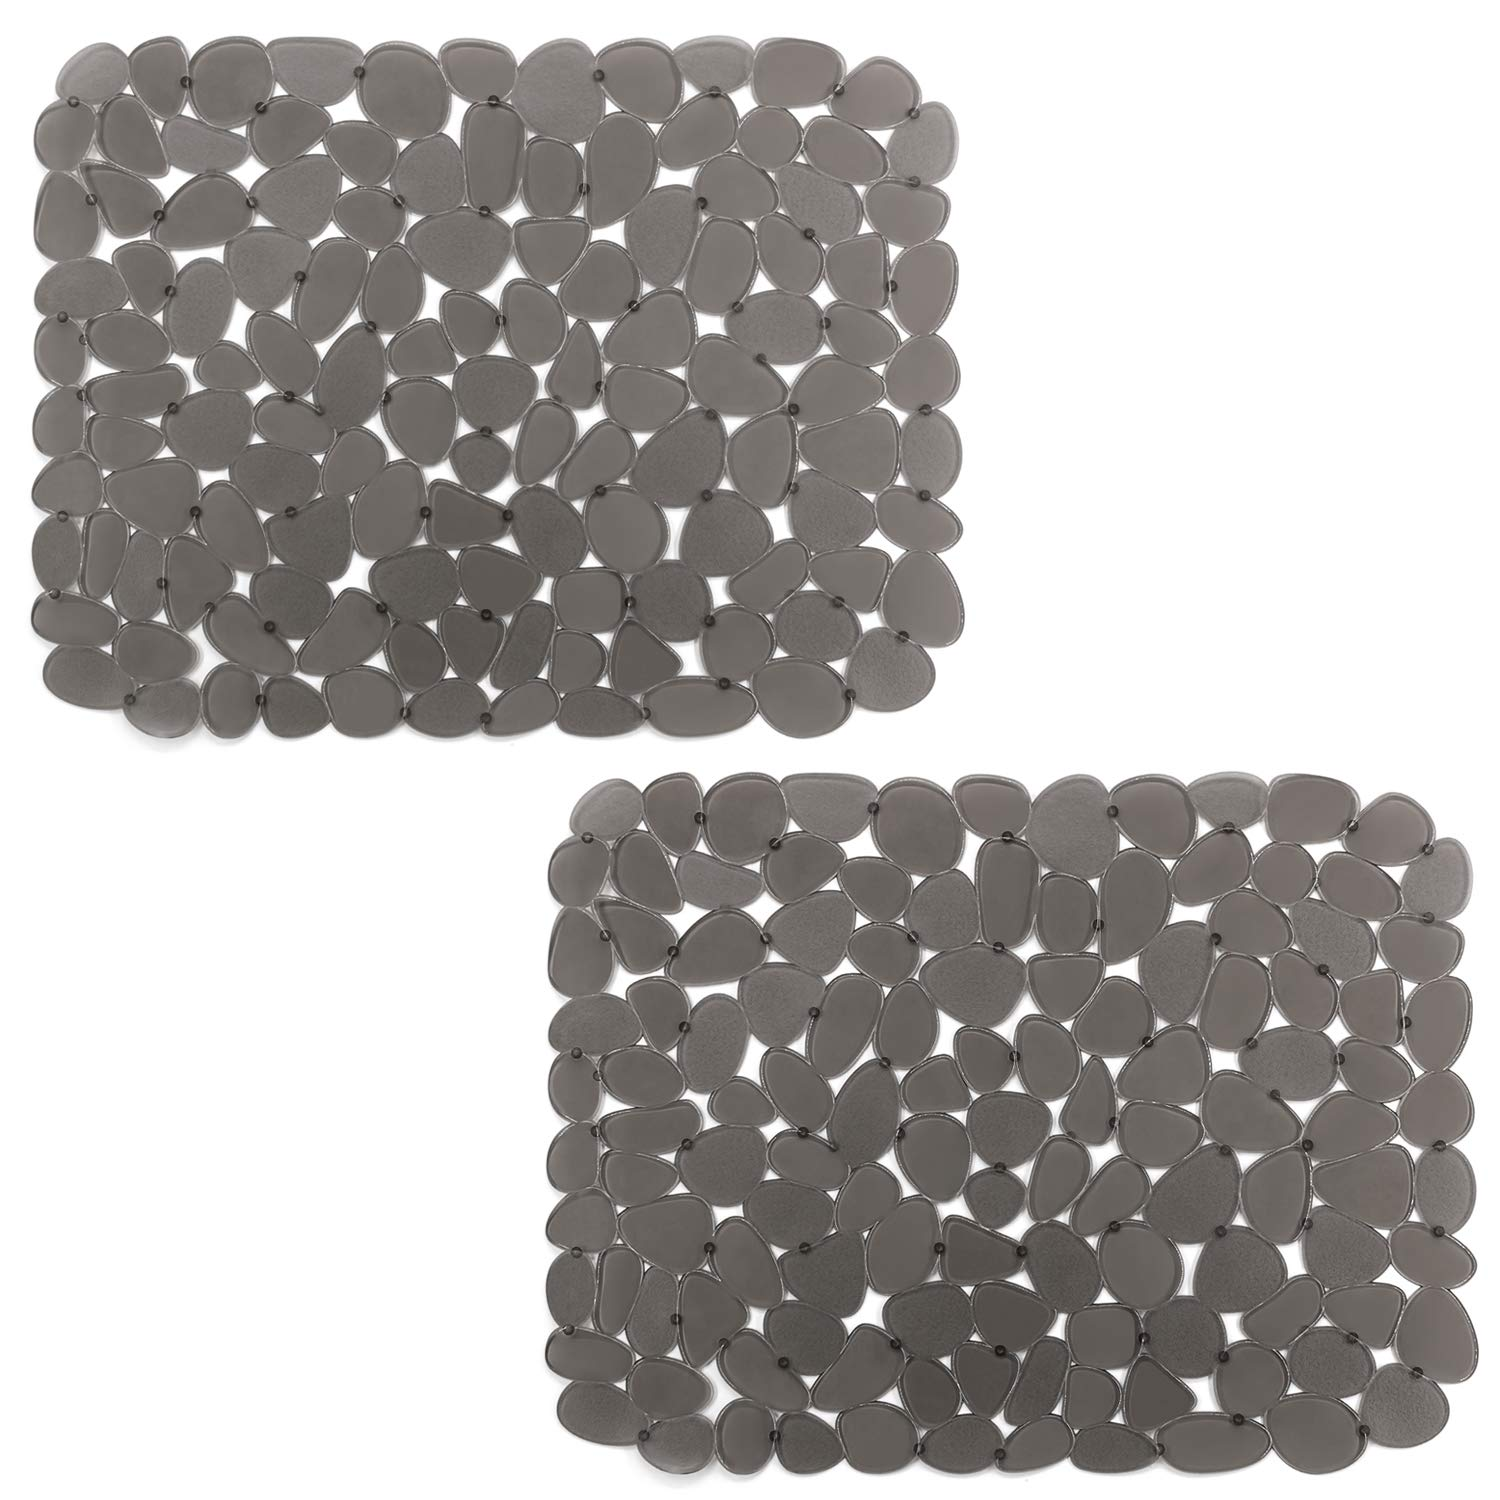 Kitchen Sink Mats, Yolife Adjustable Sink Protector for Stainless steel/Porcelain sink, Dark Gray(2 Packs)